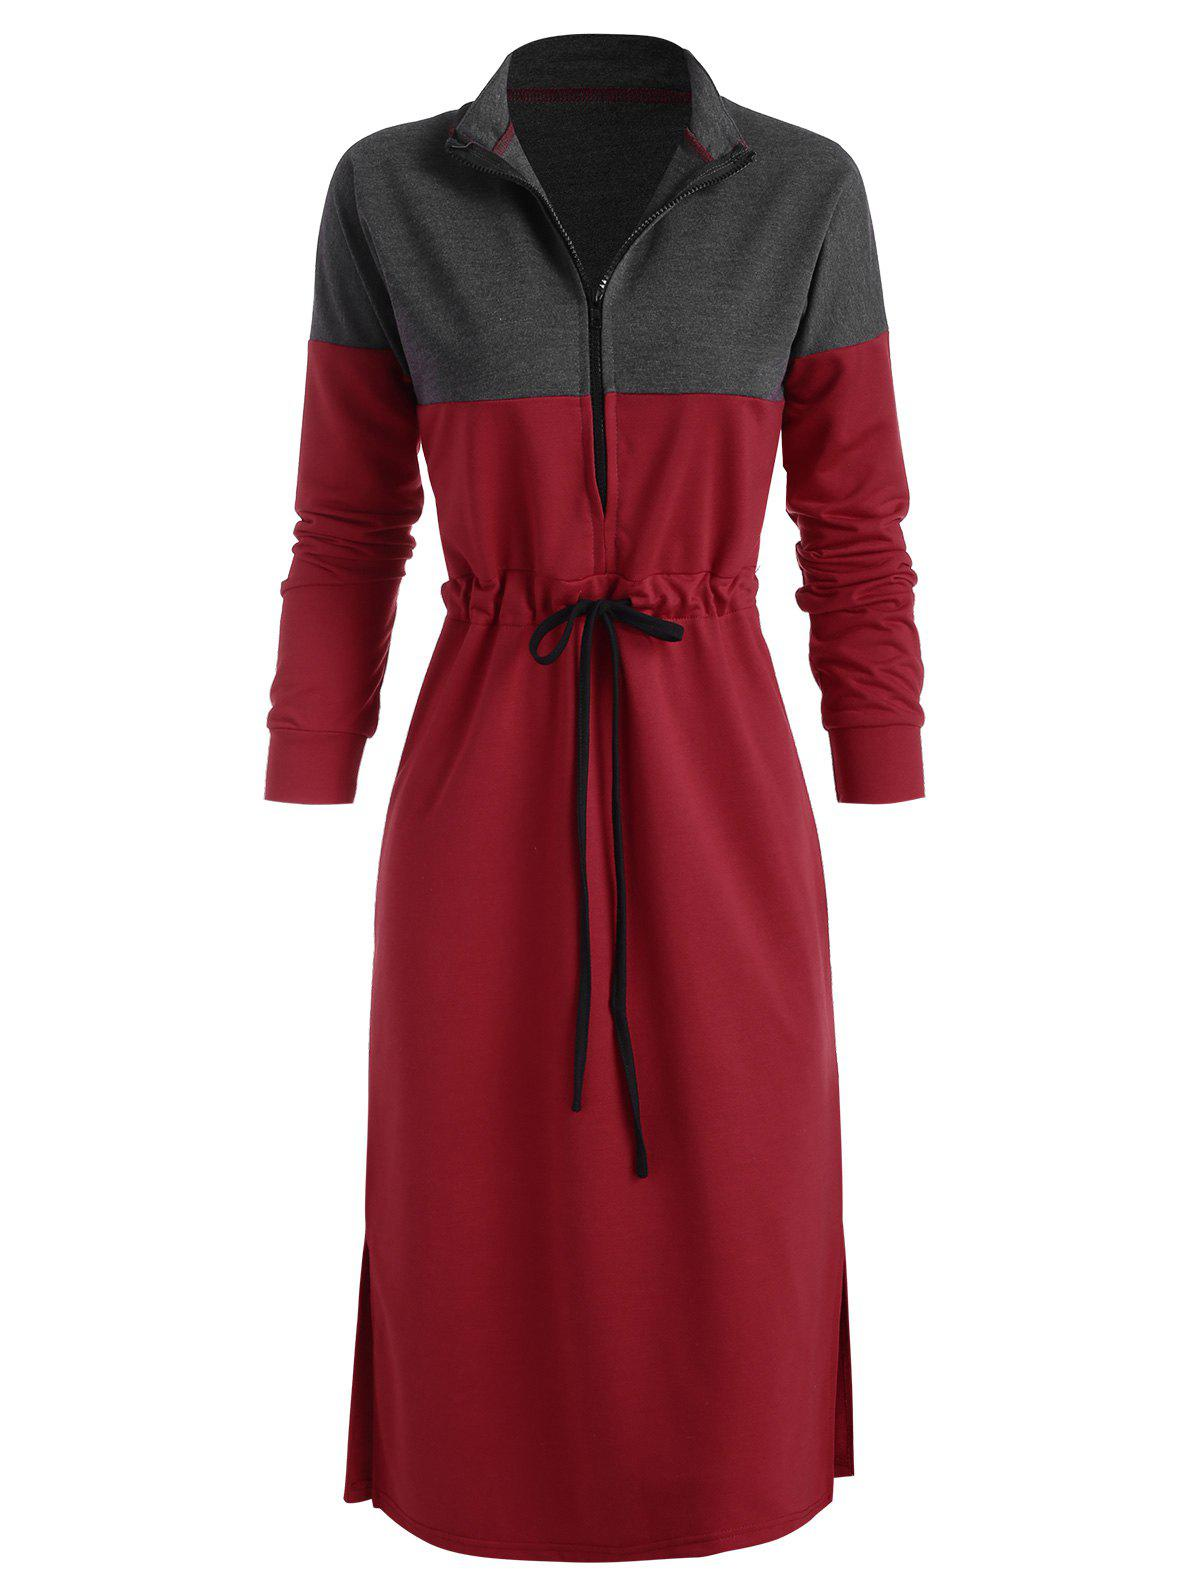 Robe Zippée Fendue Bicolore à Cordon Rouge S